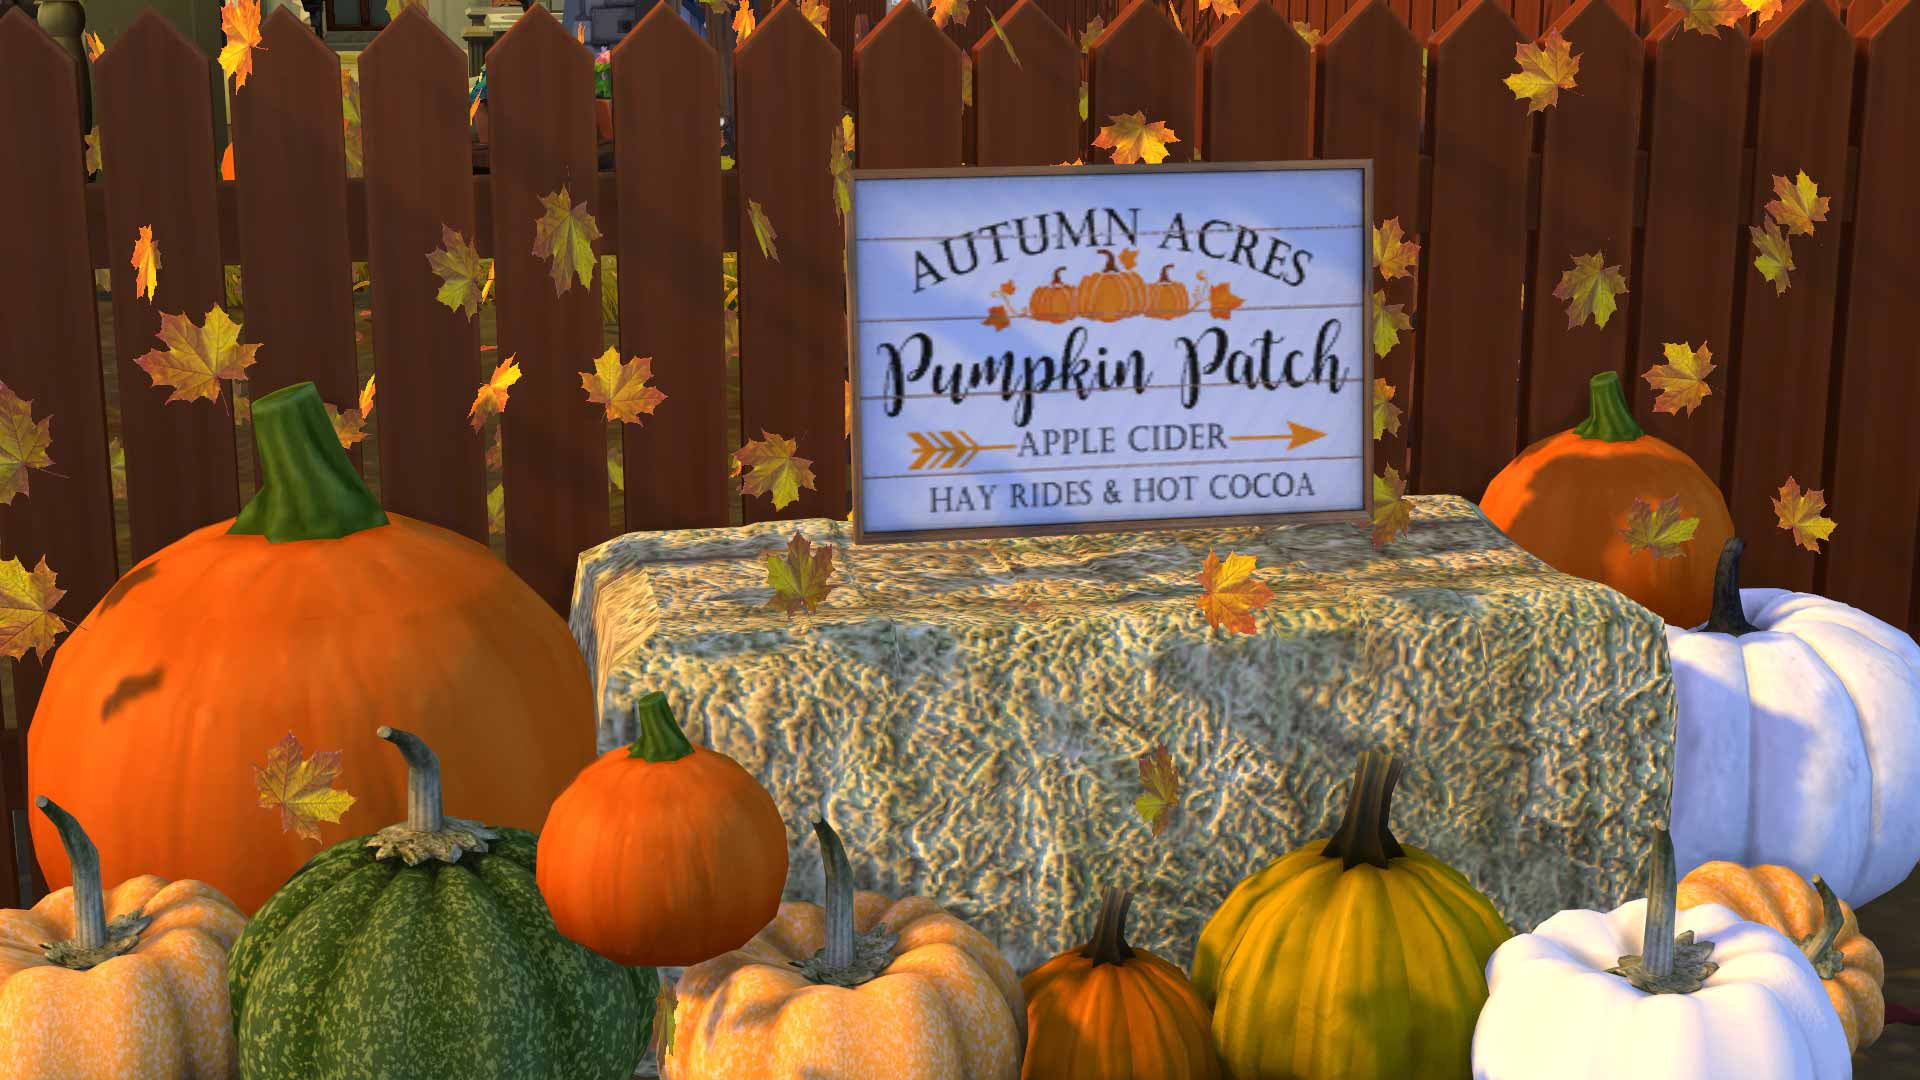 Pumpkin Patch Signs, high quality sims 4 cc, sunkissedlilacs, free sims 4 furniture, sims 4 custom content,